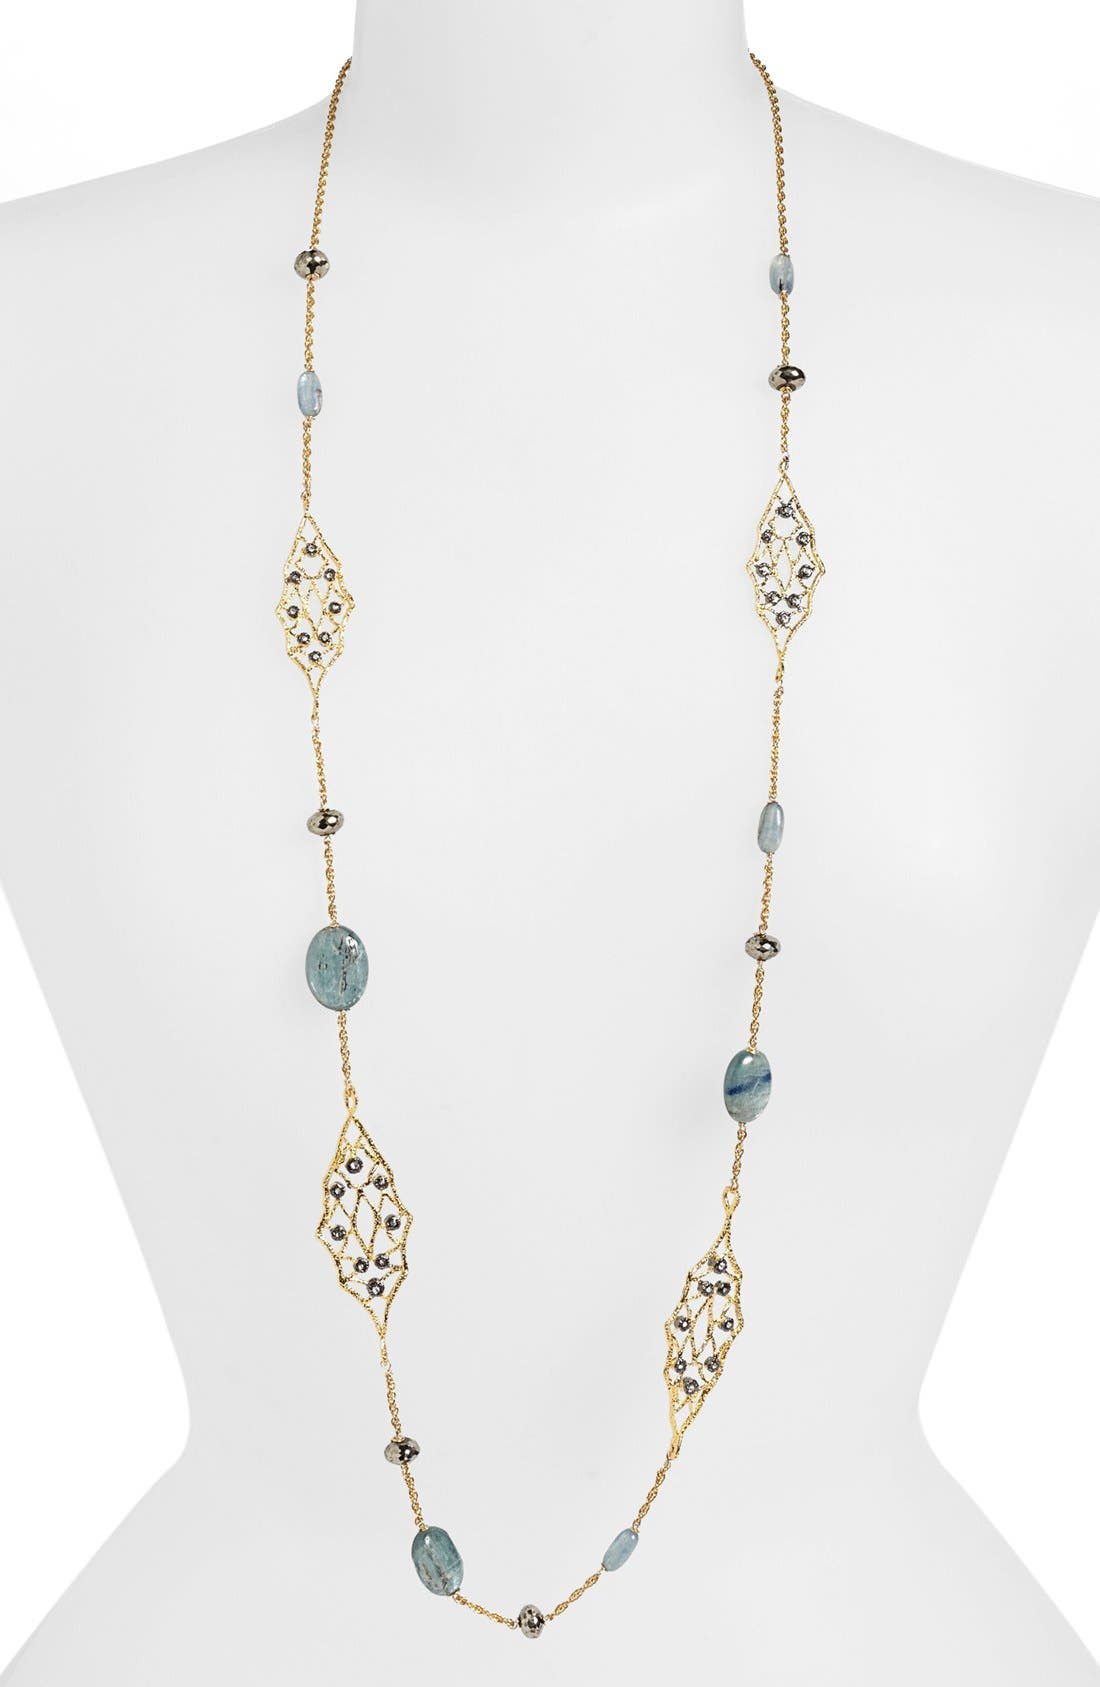 Main Image - Alexis Bittar 'Elements - Jardin de Papillon' Long Station Necklace